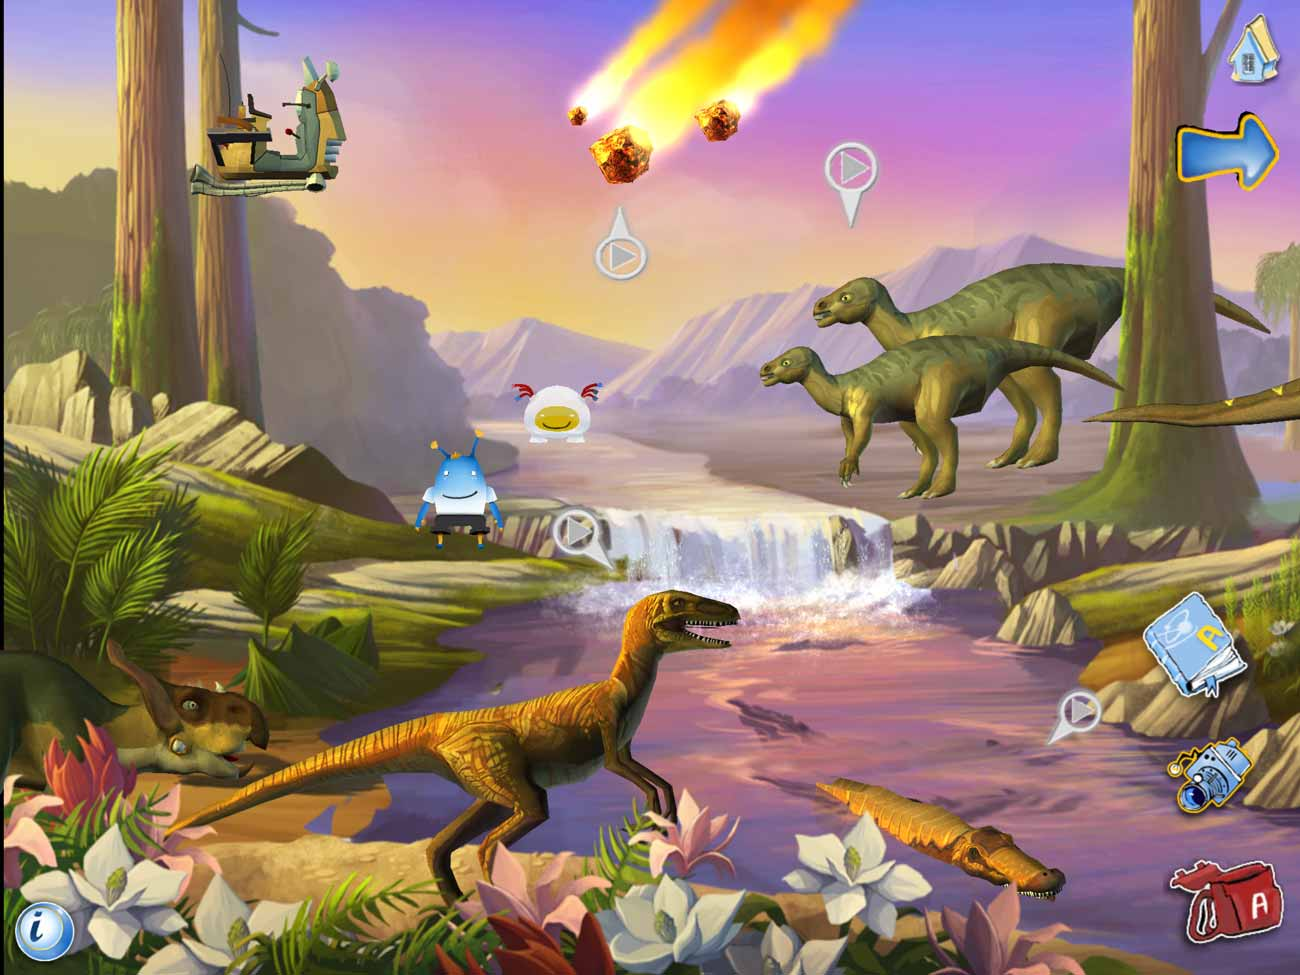 The Ansel and Clair apps each feature a detailed dinosaur scene packed with things to interact with and explore.